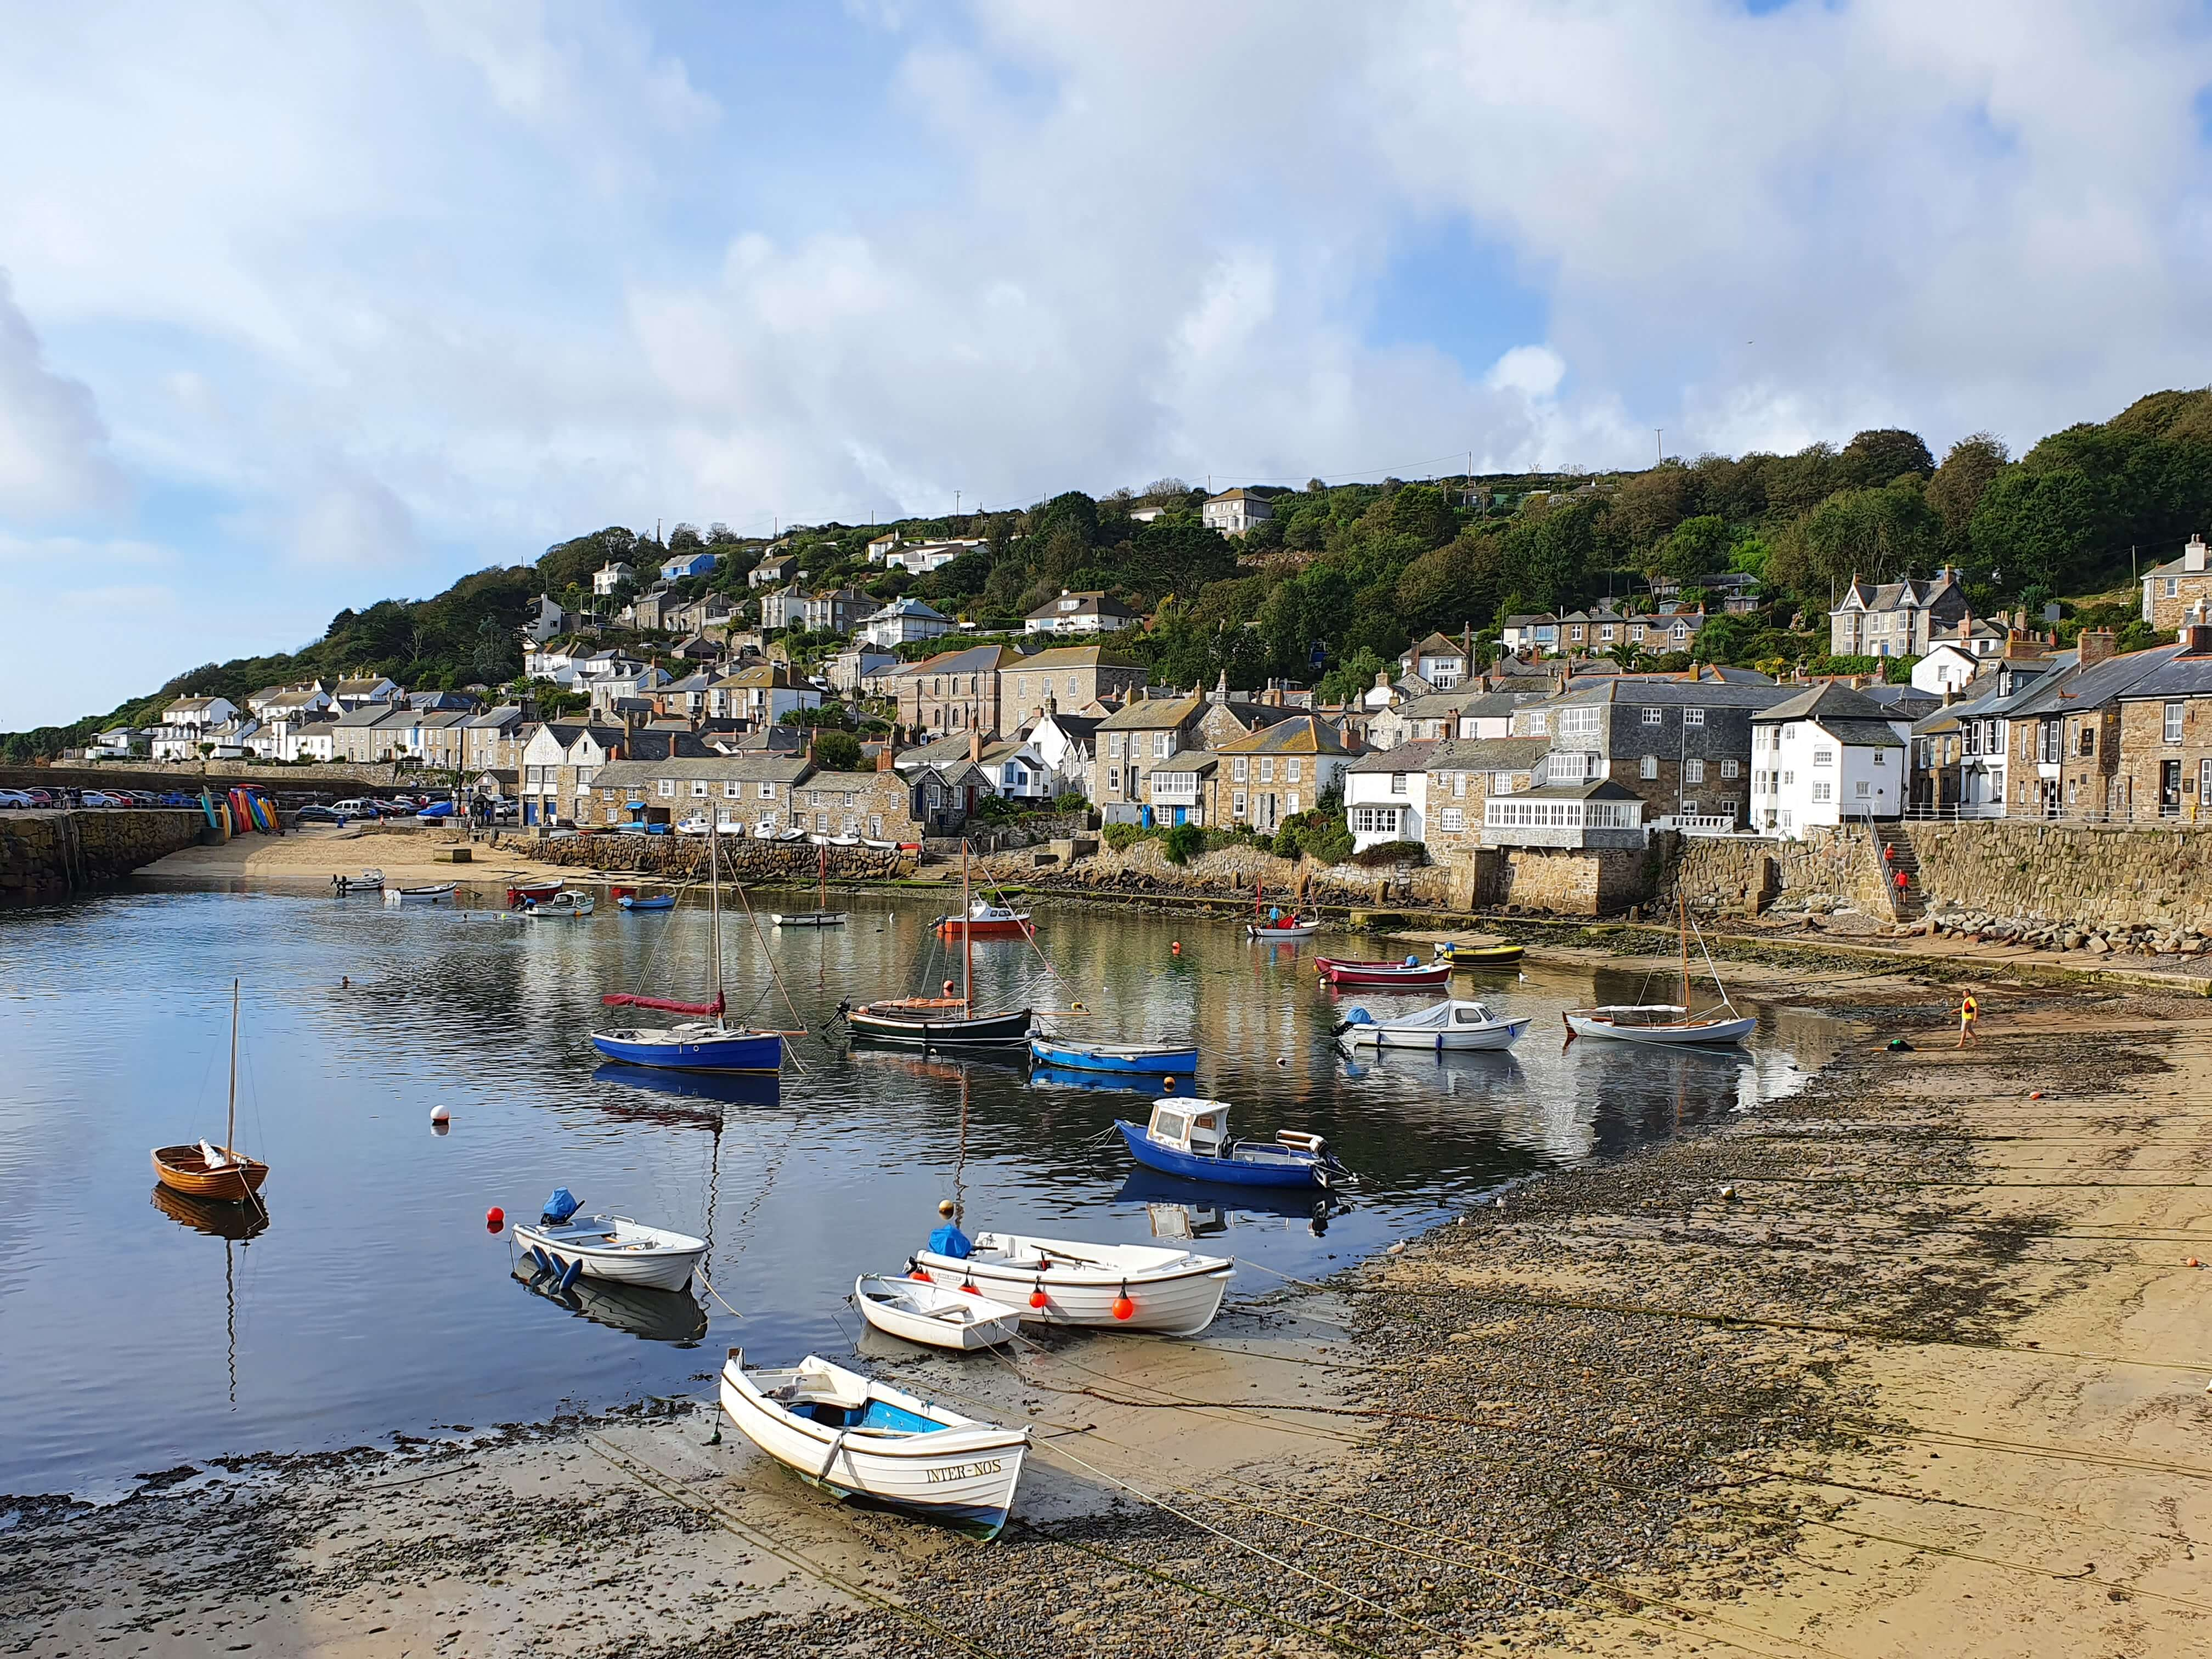 Mousehole harbour, featuring boats in the water overlooked by quaint houses and cottages